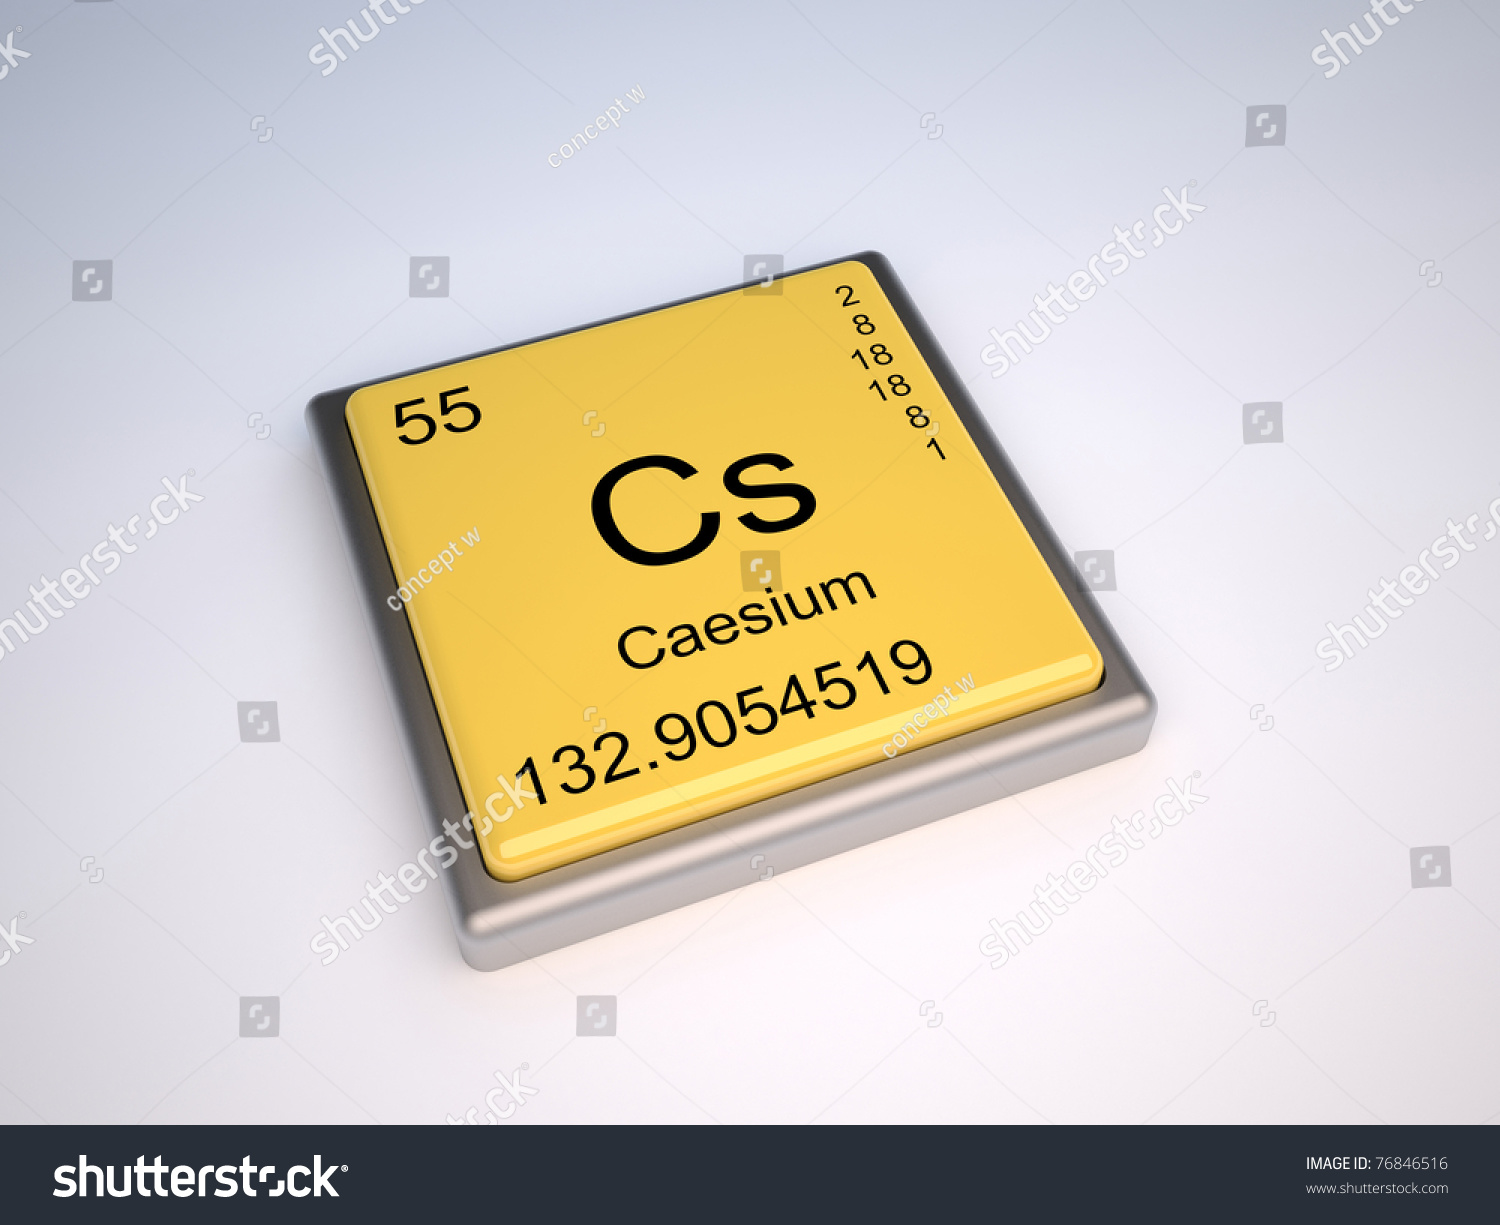 Caesium Chemical Element Periodic Table Symbol Stock